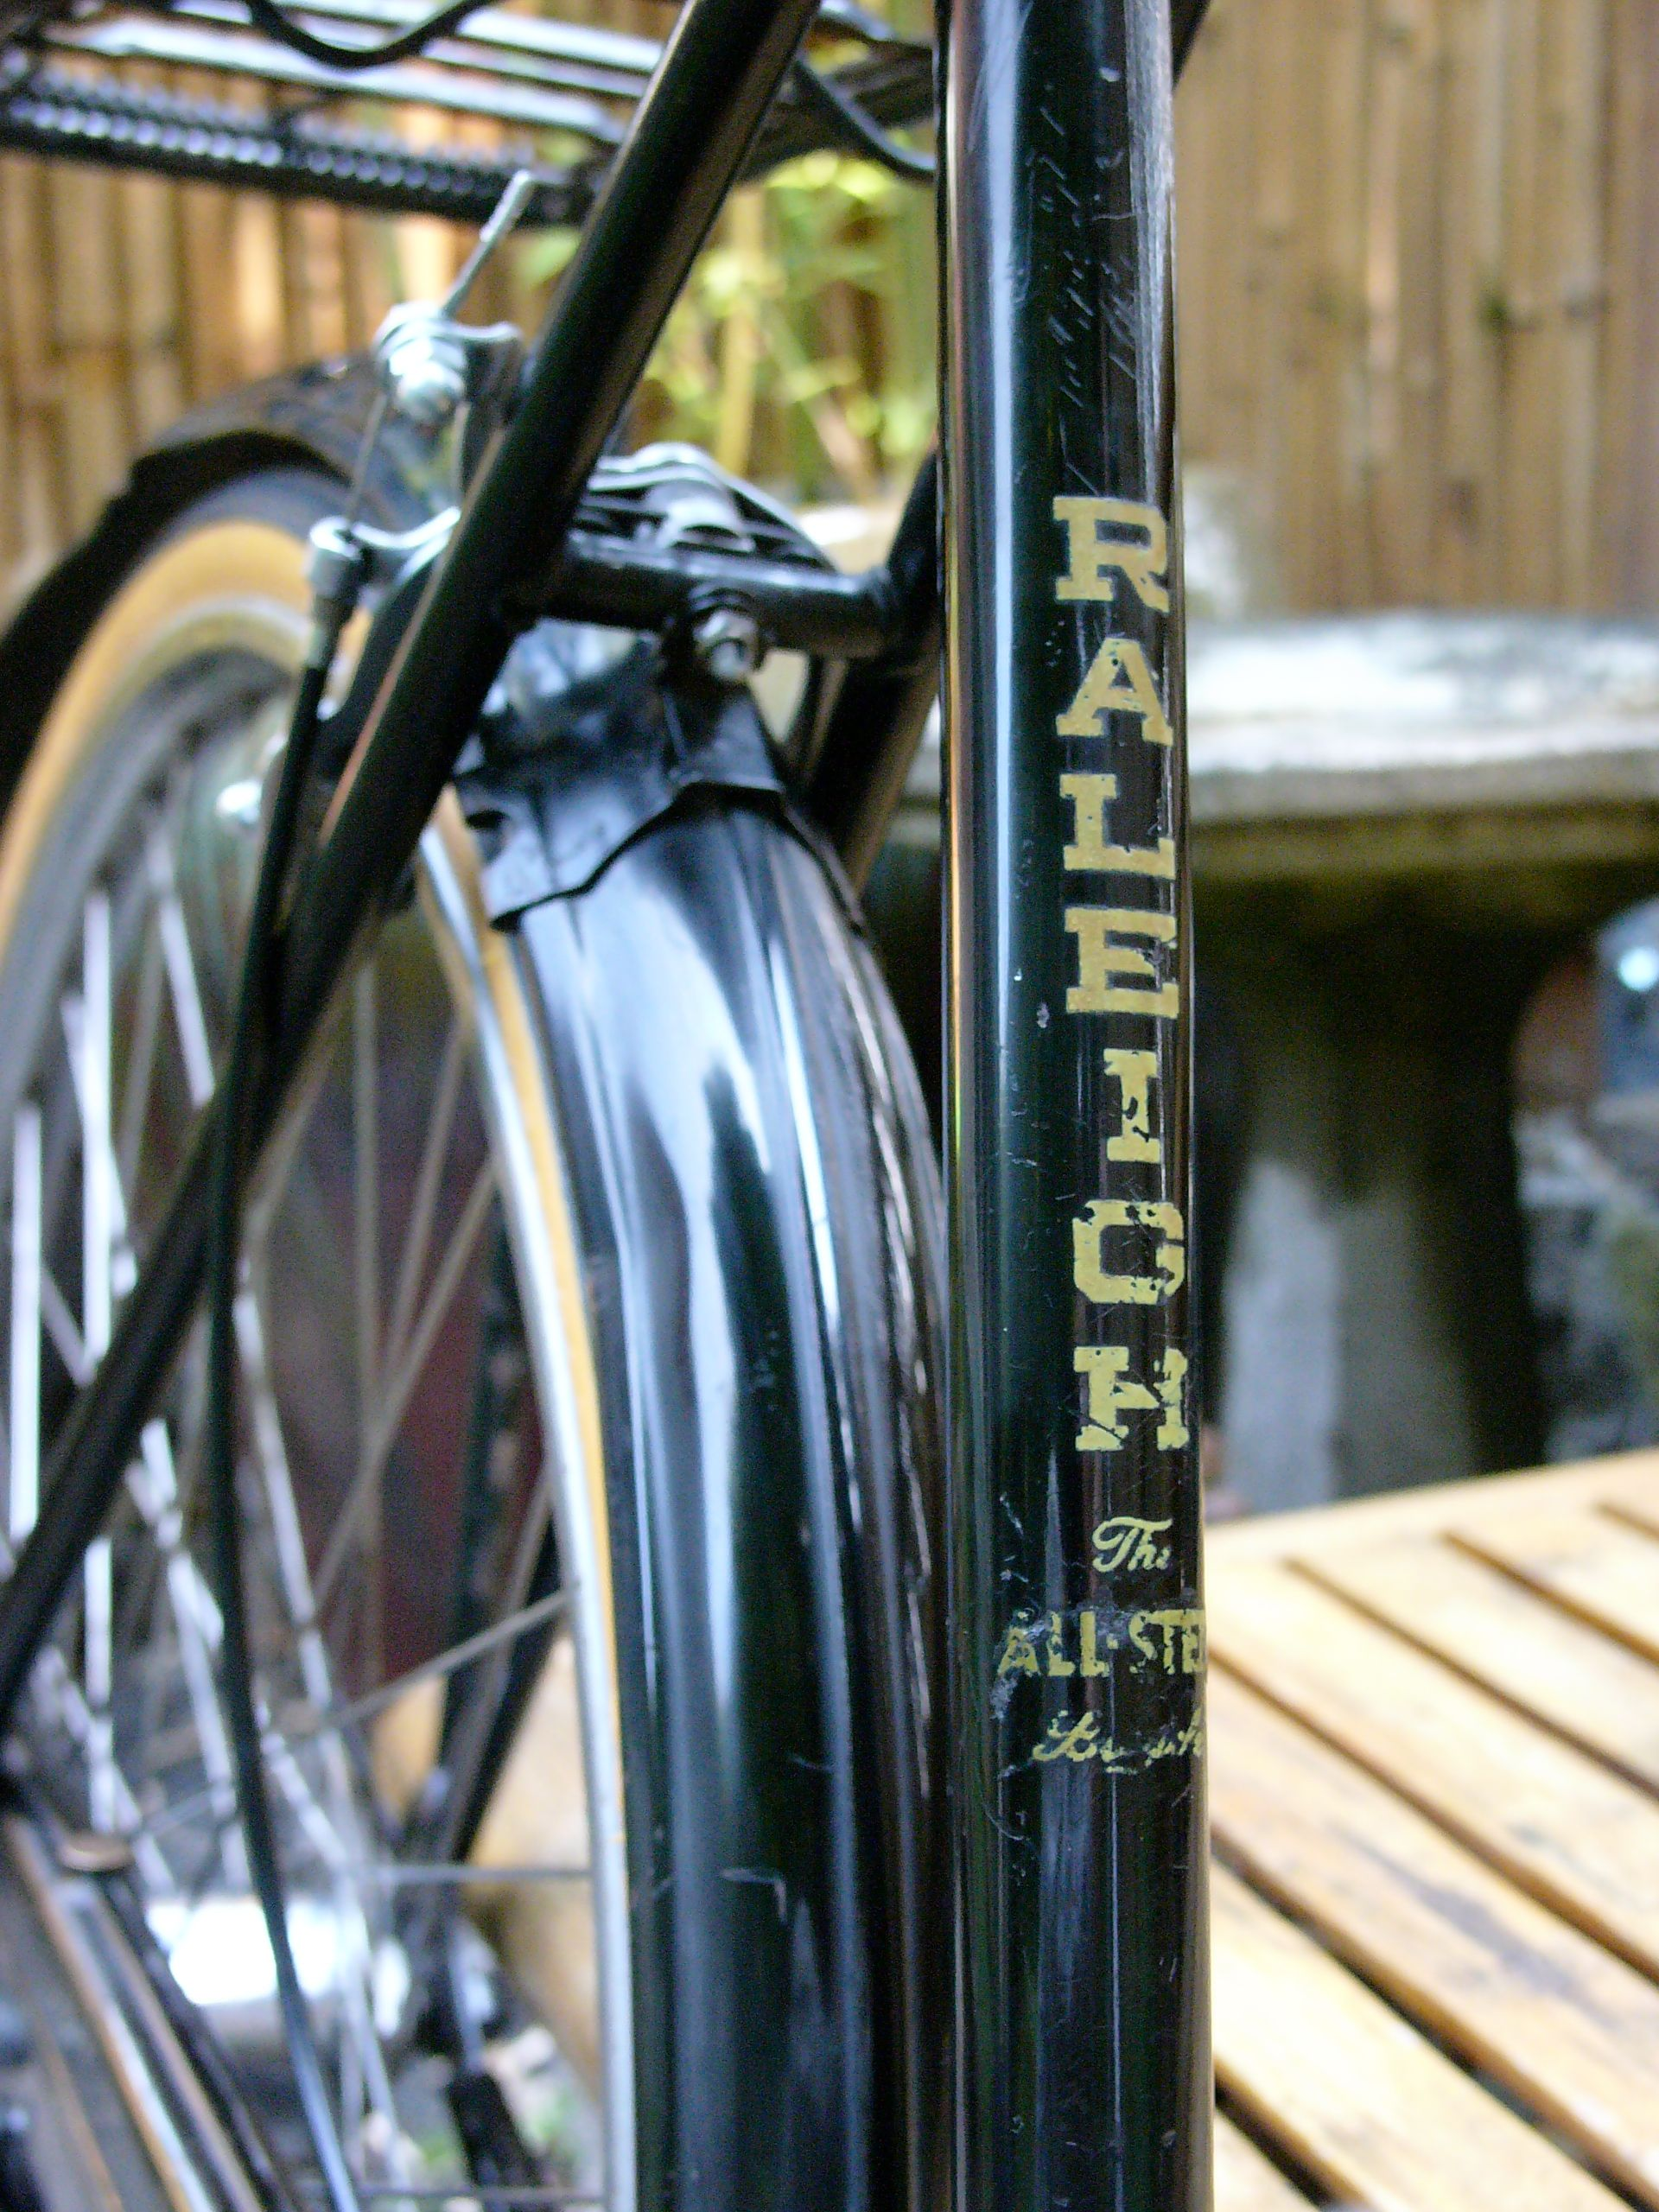 1950 Raleigh Sports Tourist Raleigh Bicycle Raleigh Bikes Vintage Bicycles